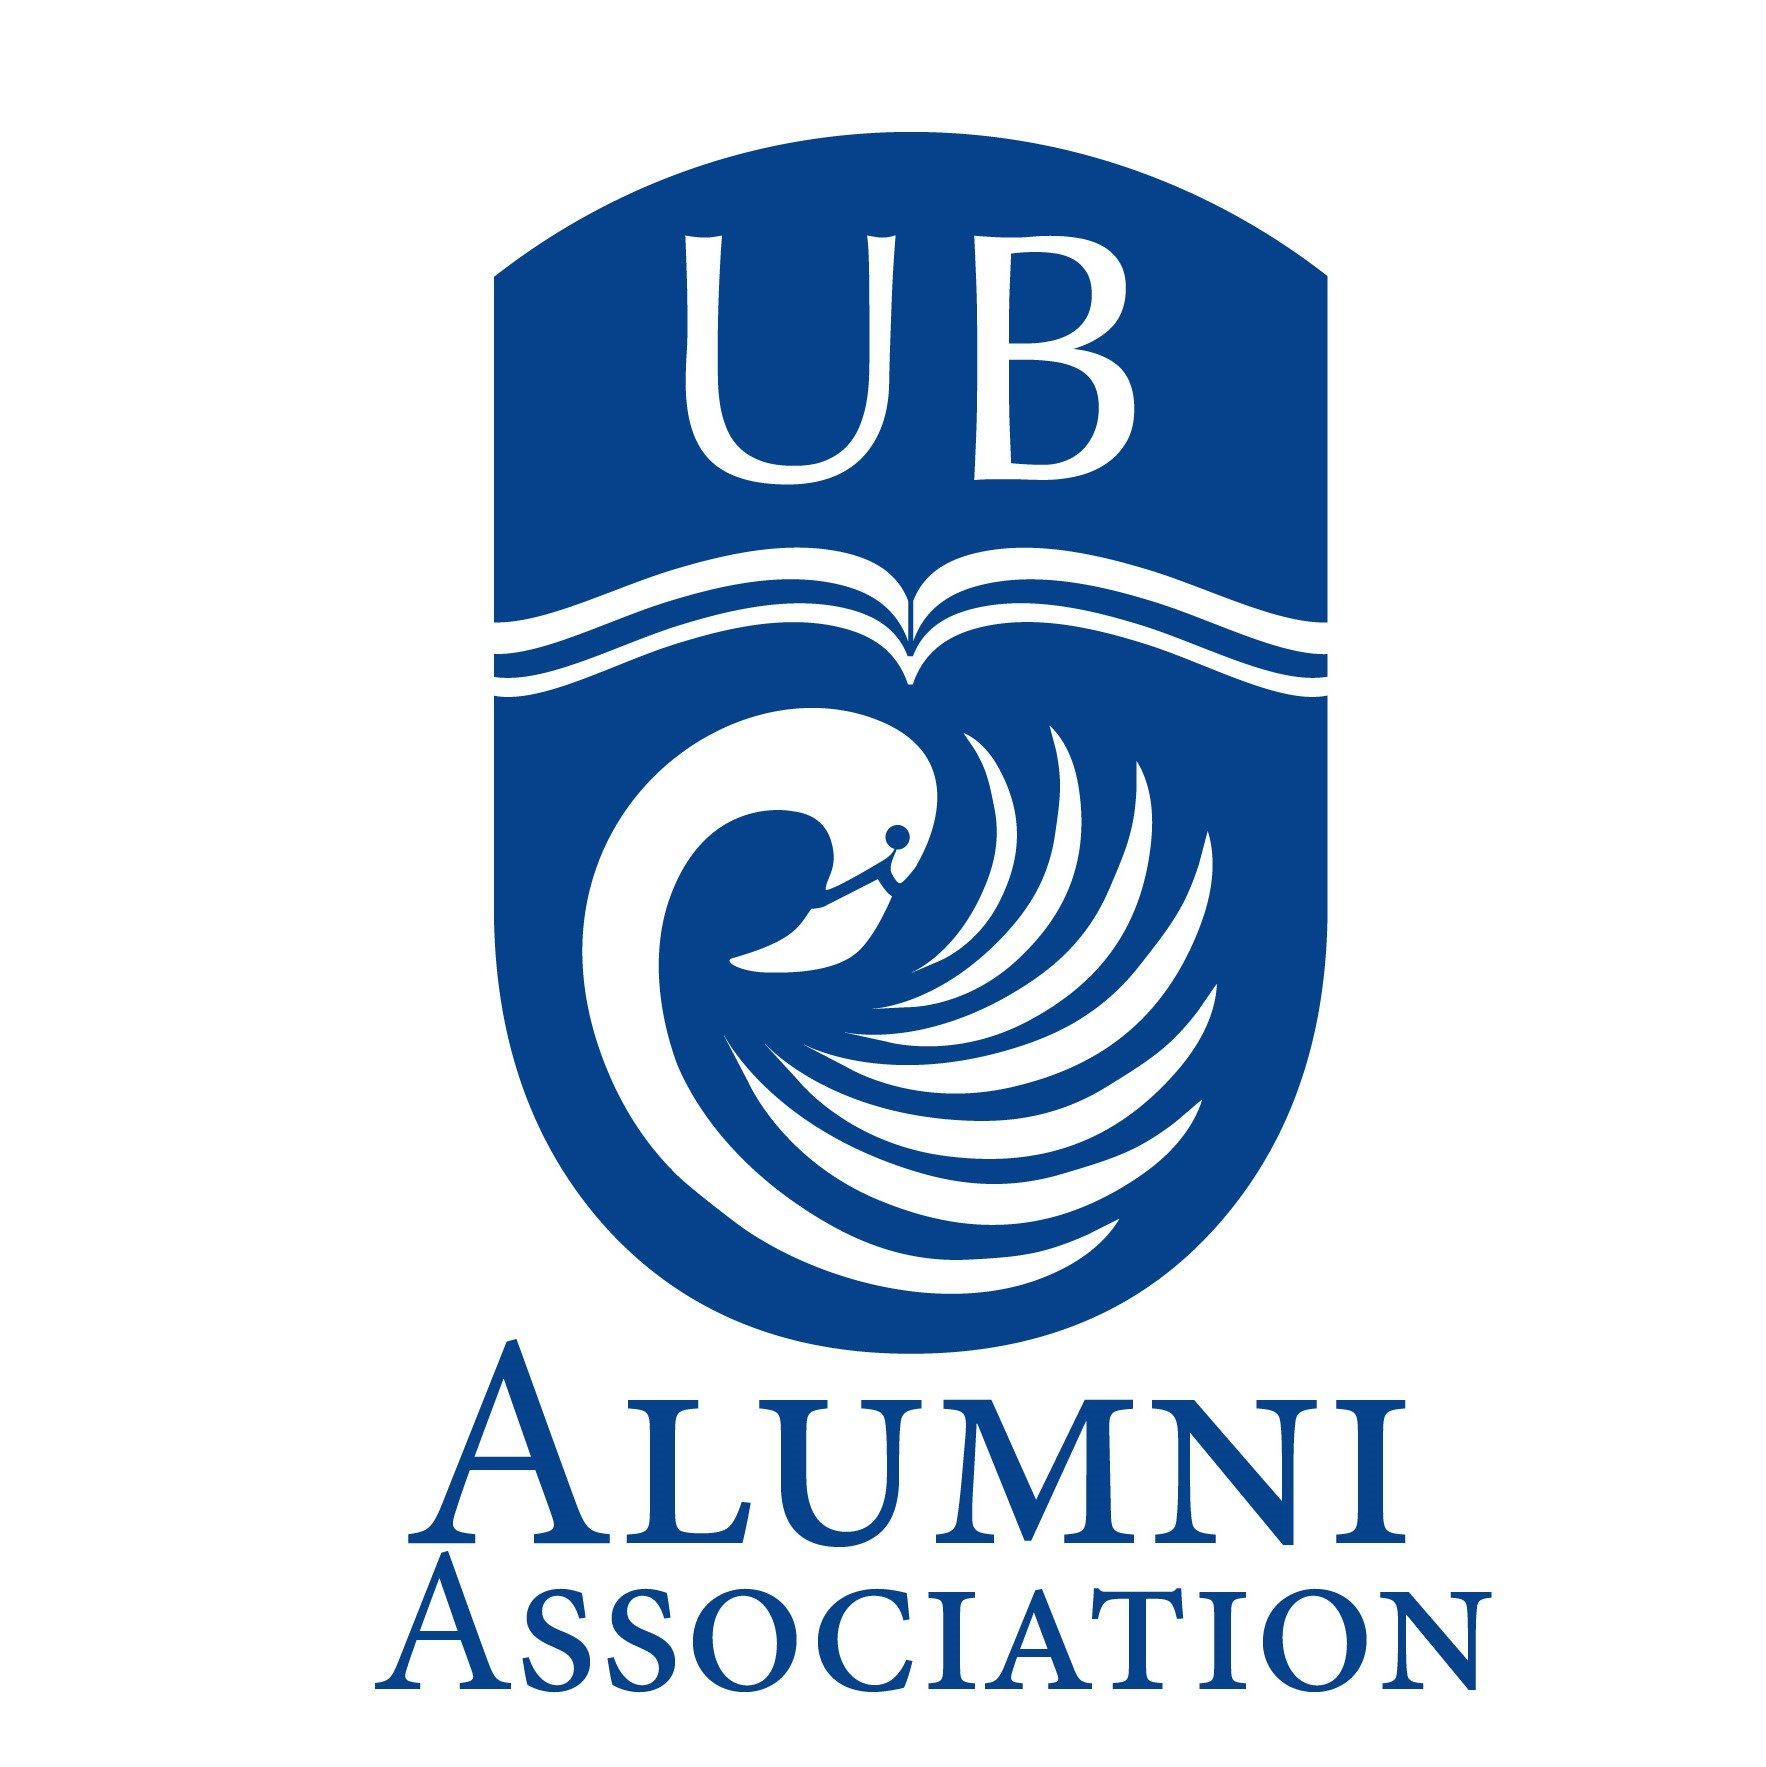 alumni associations You could receive a discount on your geico insurance if you are a member of one of these college or university organizations.